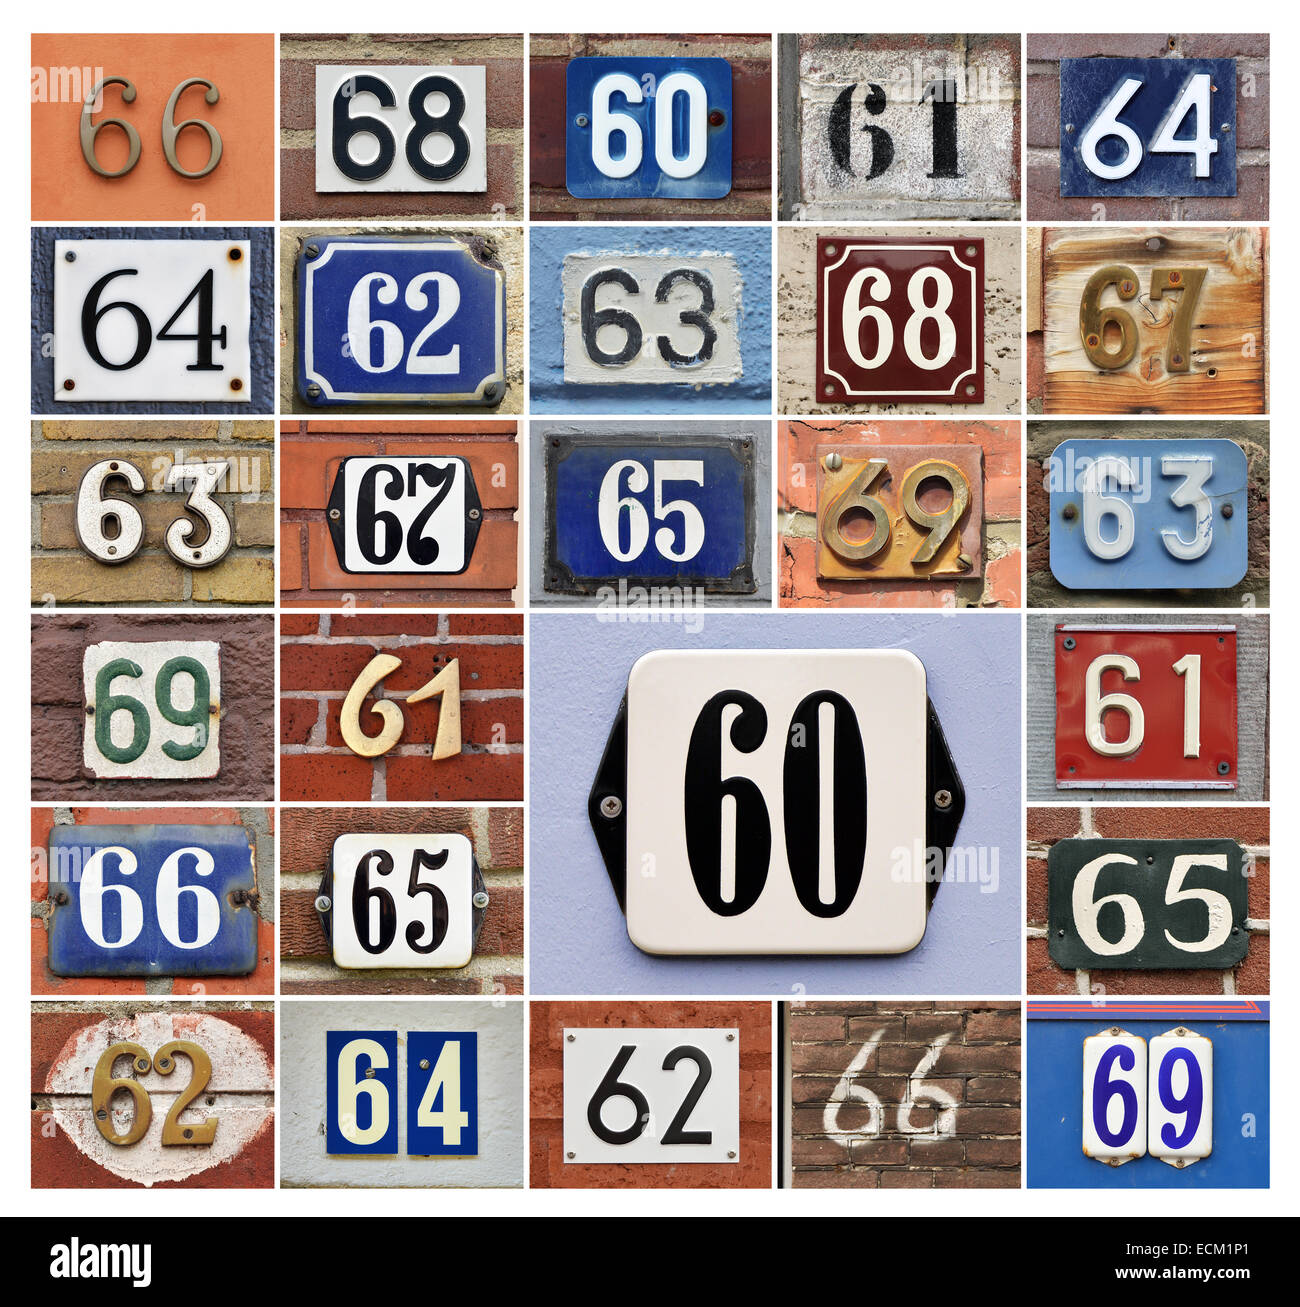 Collage of House numbers 60s - Stock Image